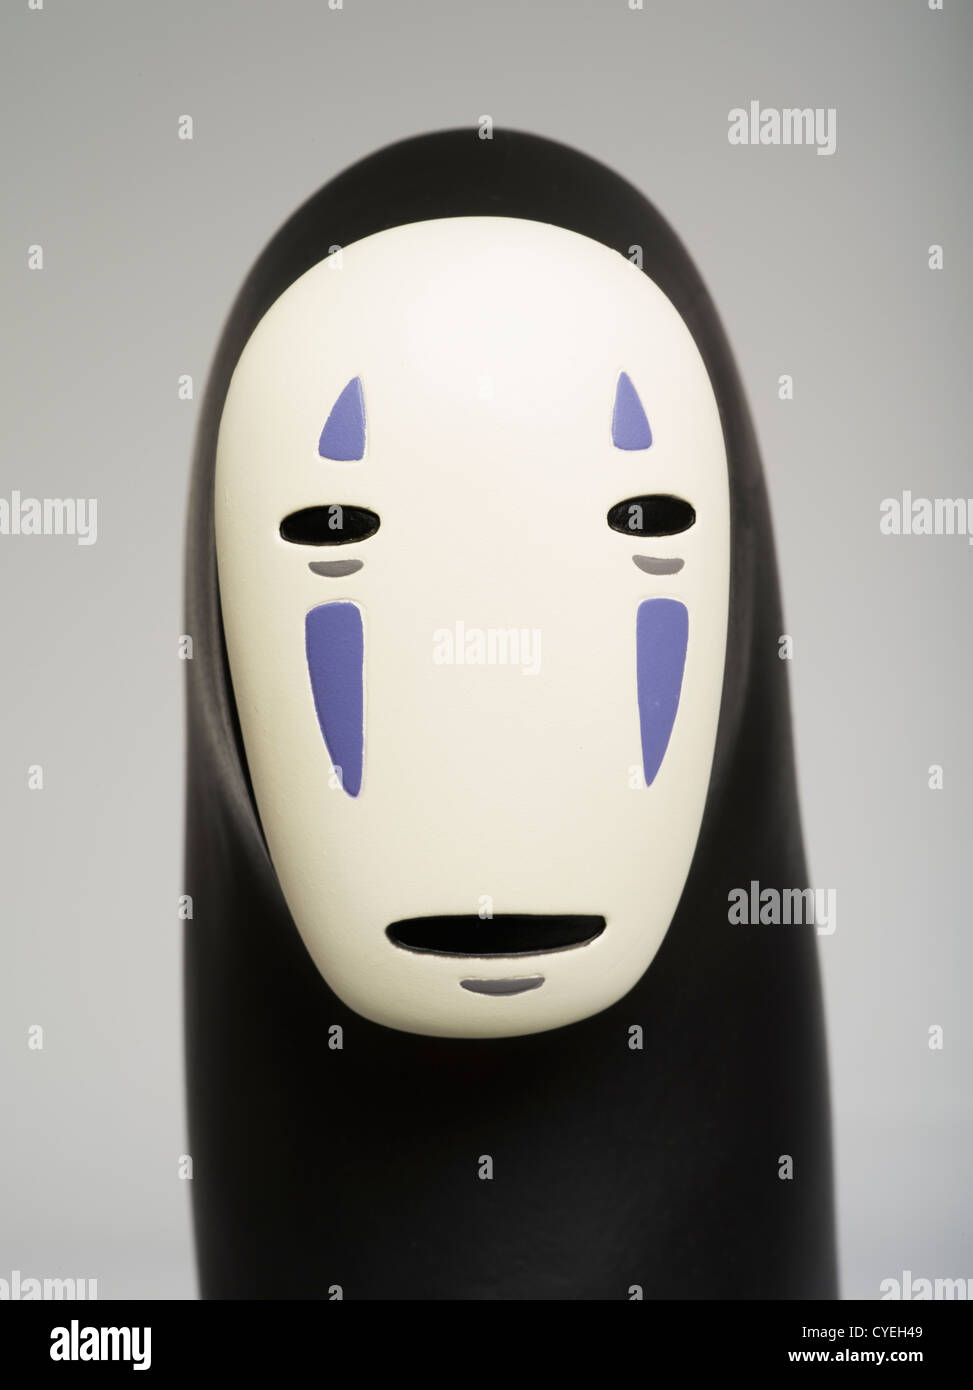 No-face toy from anime movie Spirted Away / Sen to Chihiro, directed by Hayao Miyazaki, produced by Studio Ghibli Stock Photo